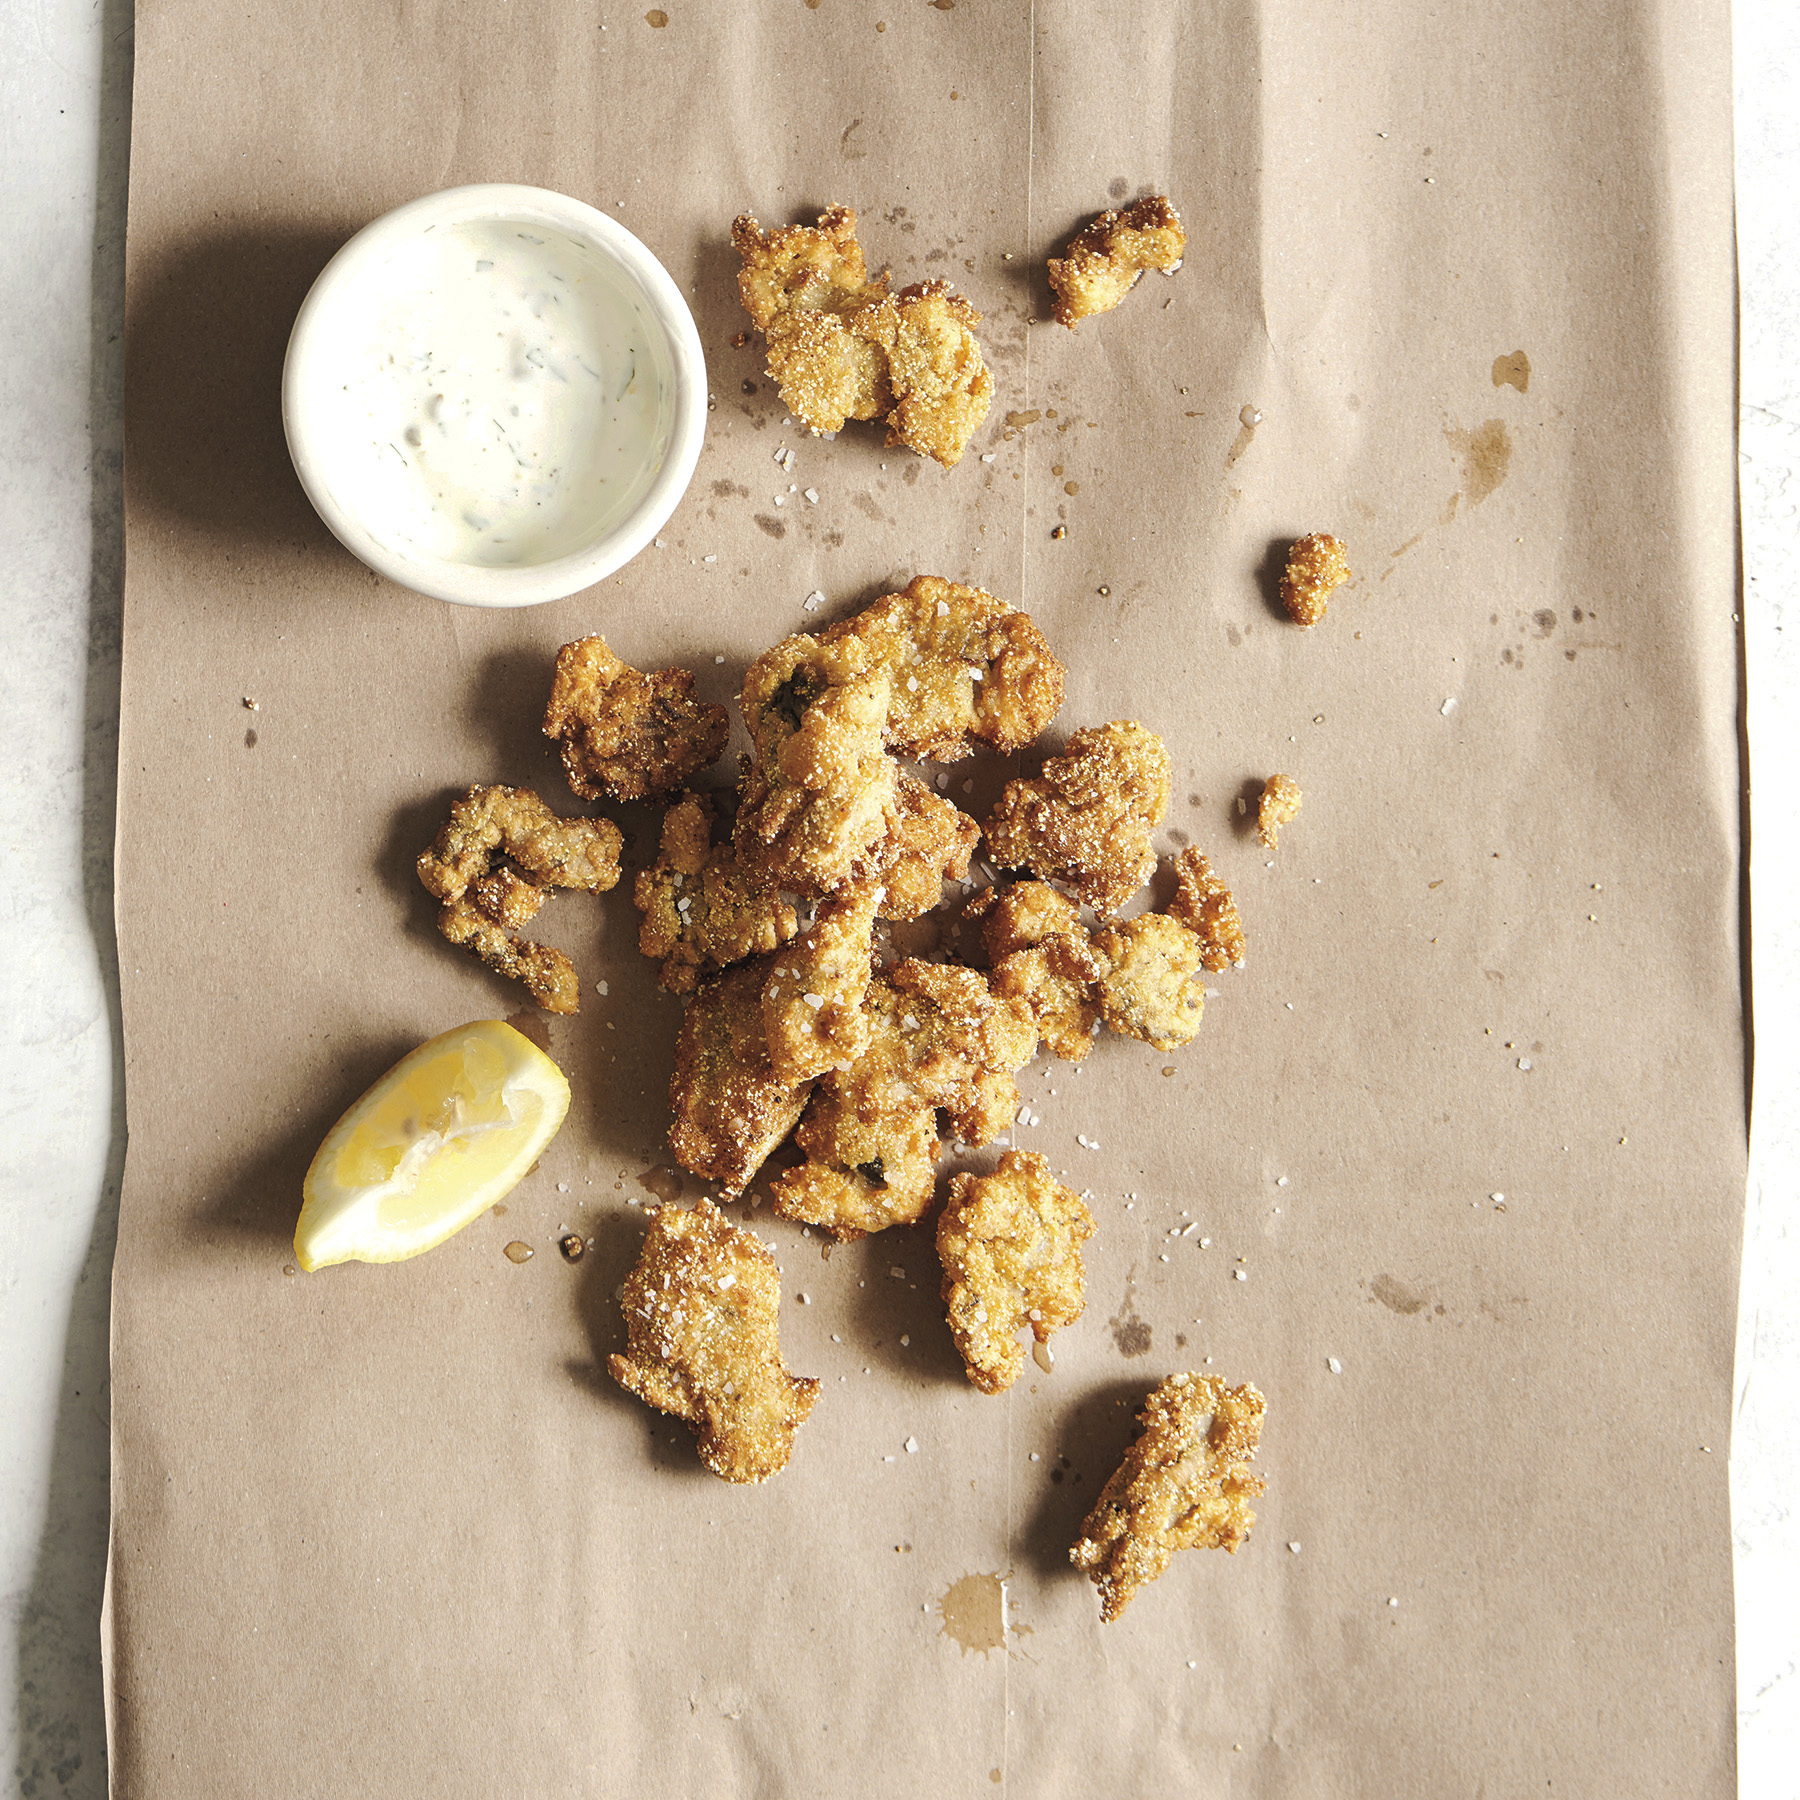 cornmeal fried oysters with homemade tartar